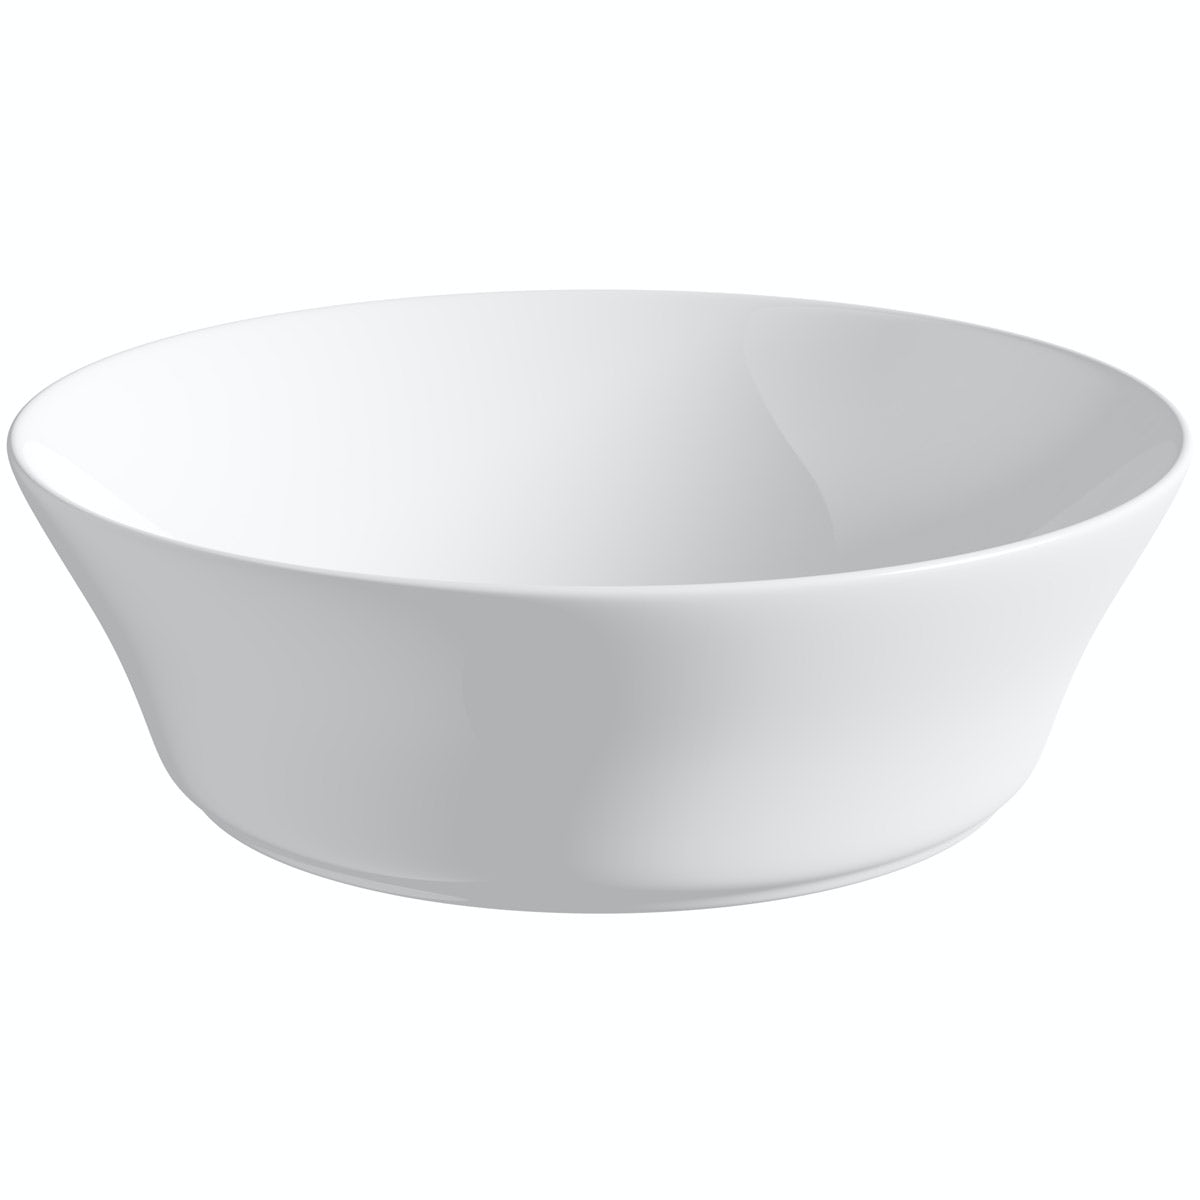 Mode Bowery round thin edge countertop basin 415mm